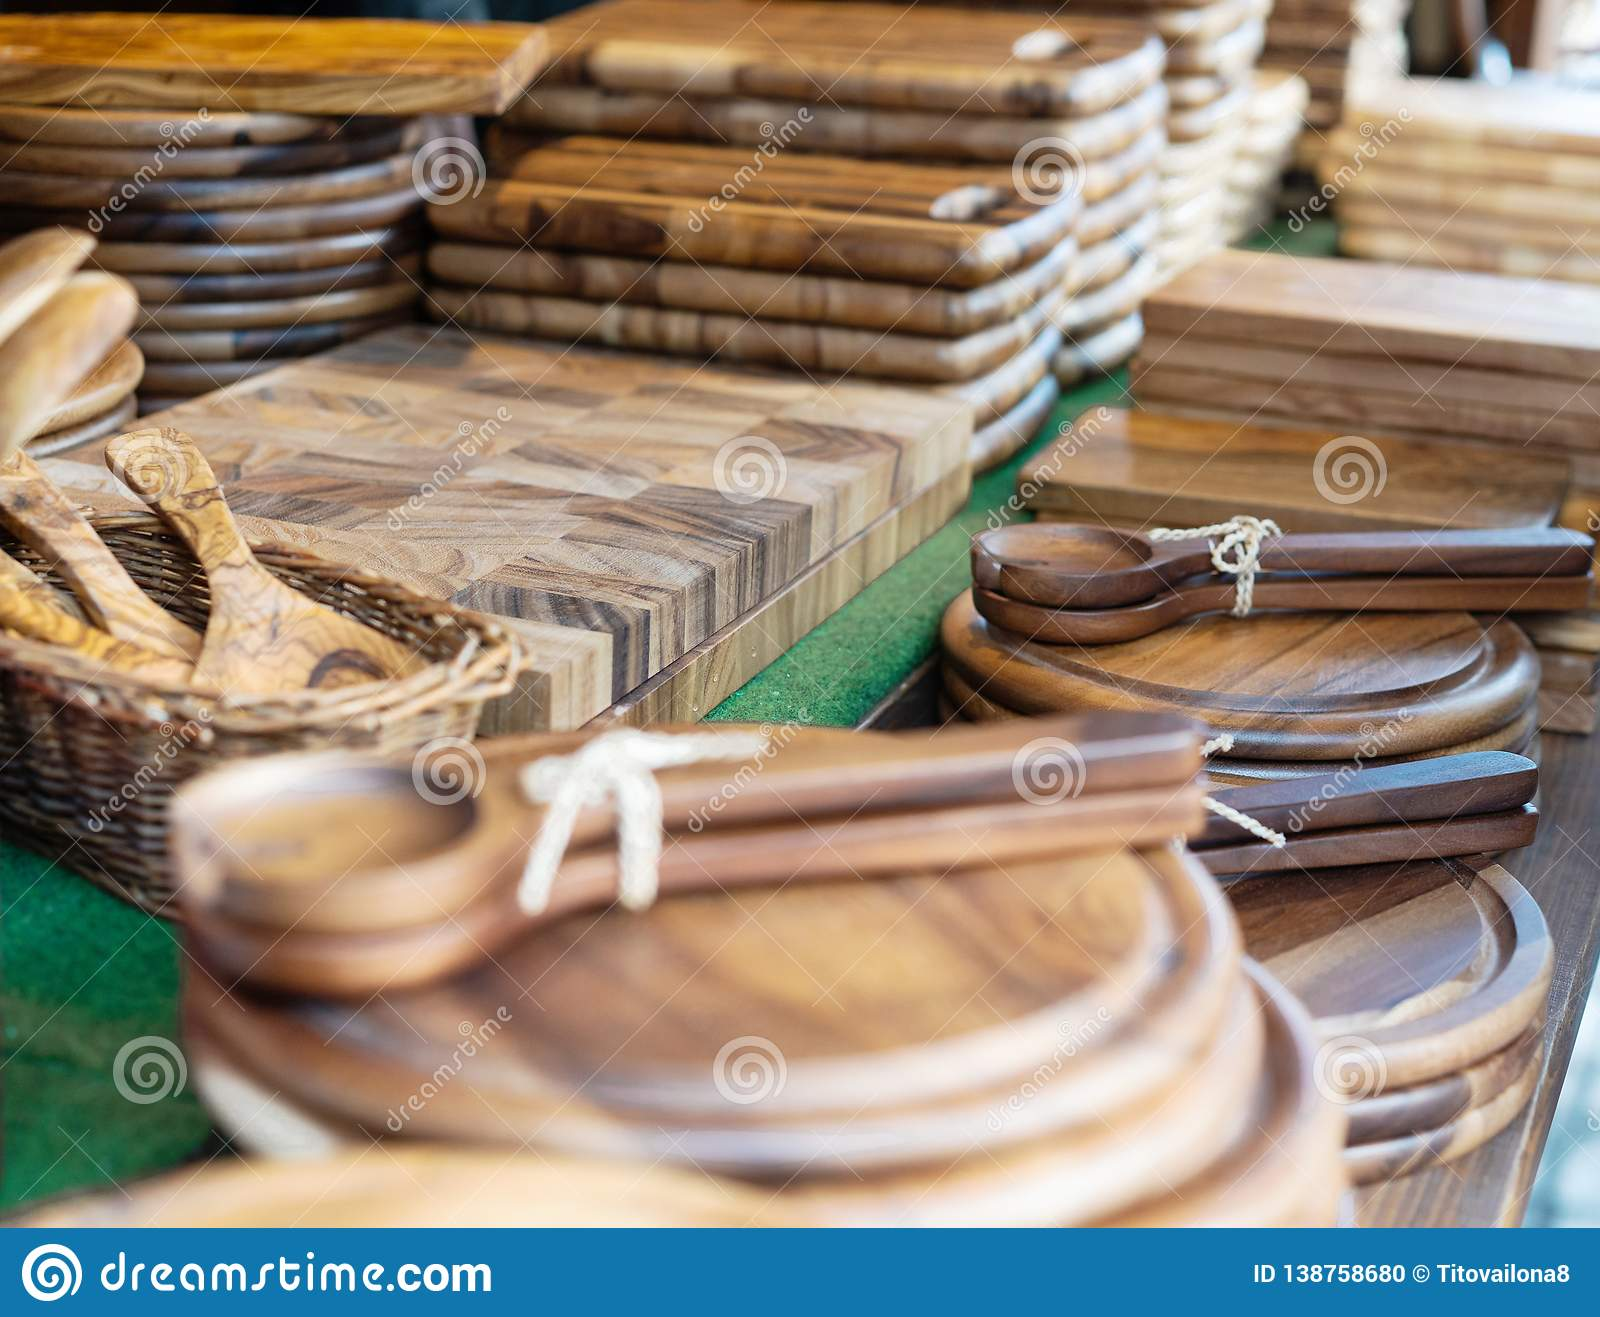 Wooden kitchenware on the counter at the fair